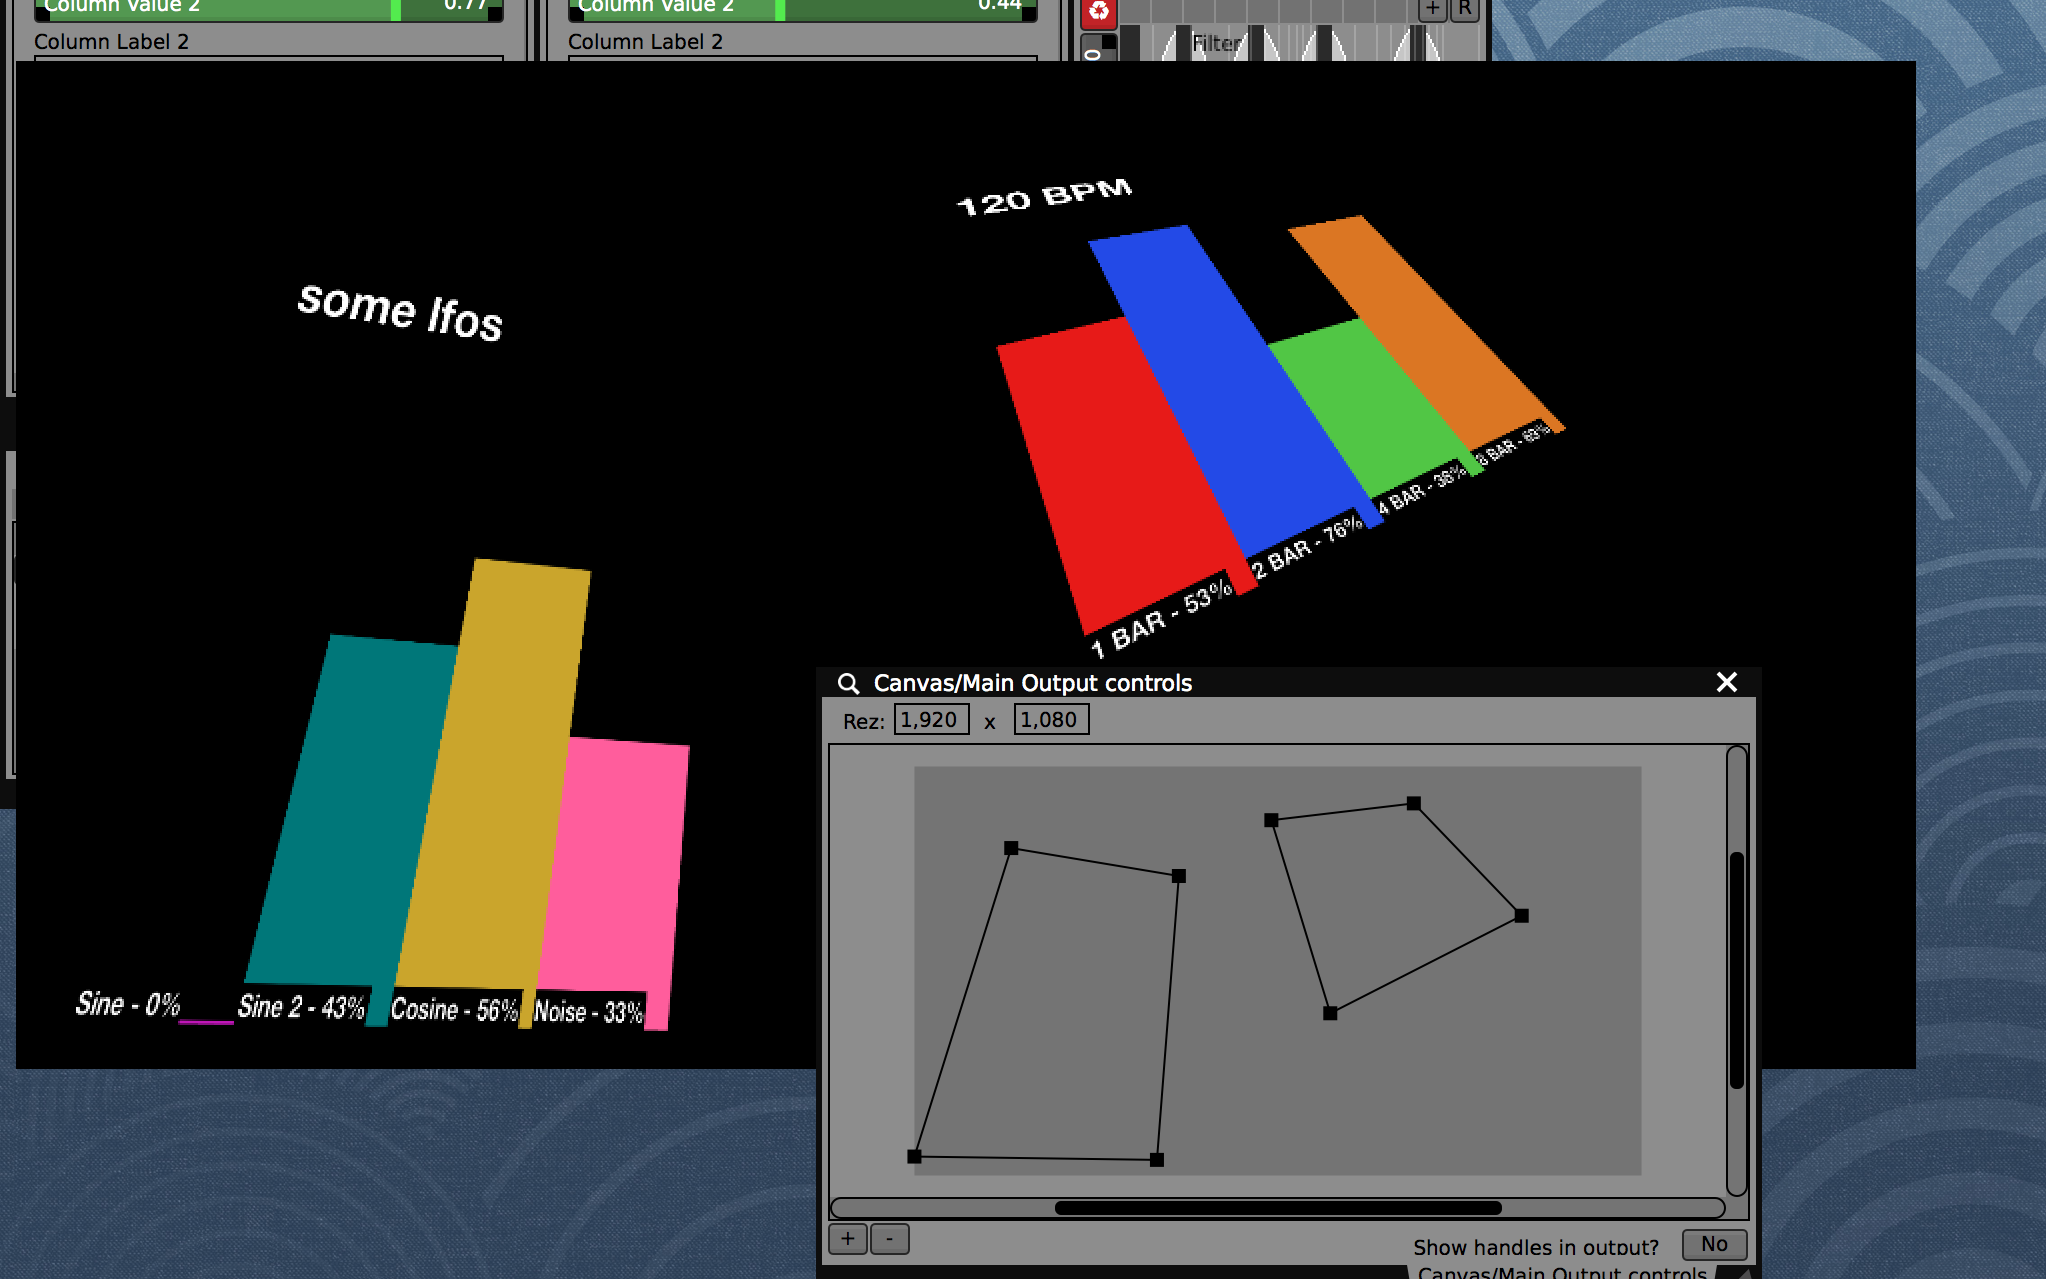 Enable 'Quad' mode in the Layer Composition to applyperspective correction for basic projection mappingof the graphs onto surfaces.